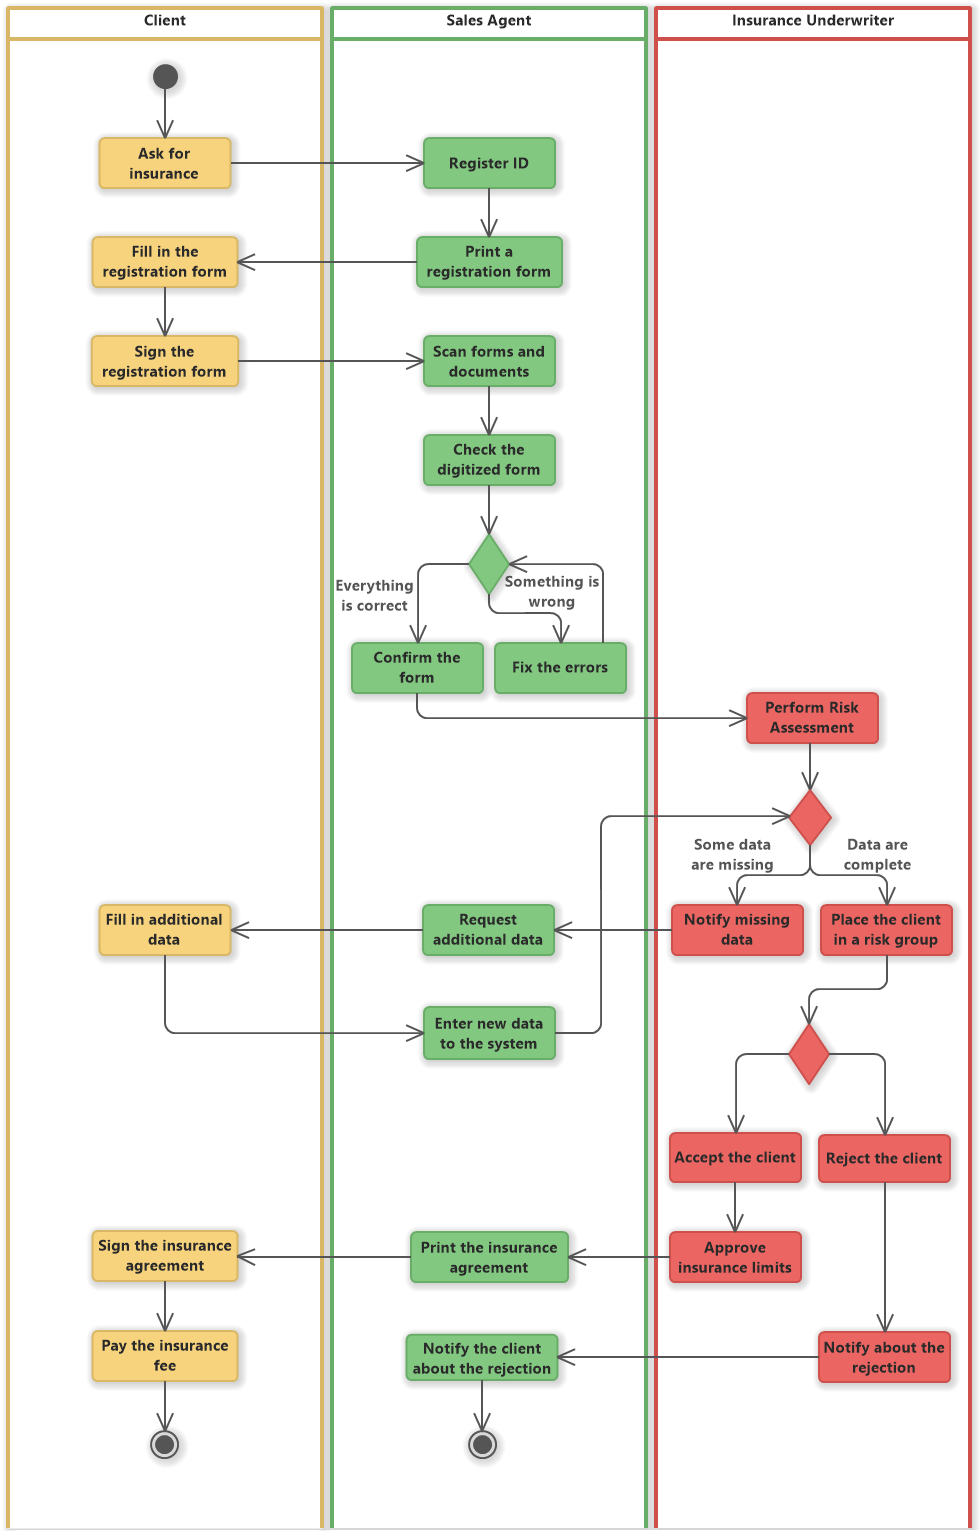 Register New Client for Insurance (UML Activity Diagram)